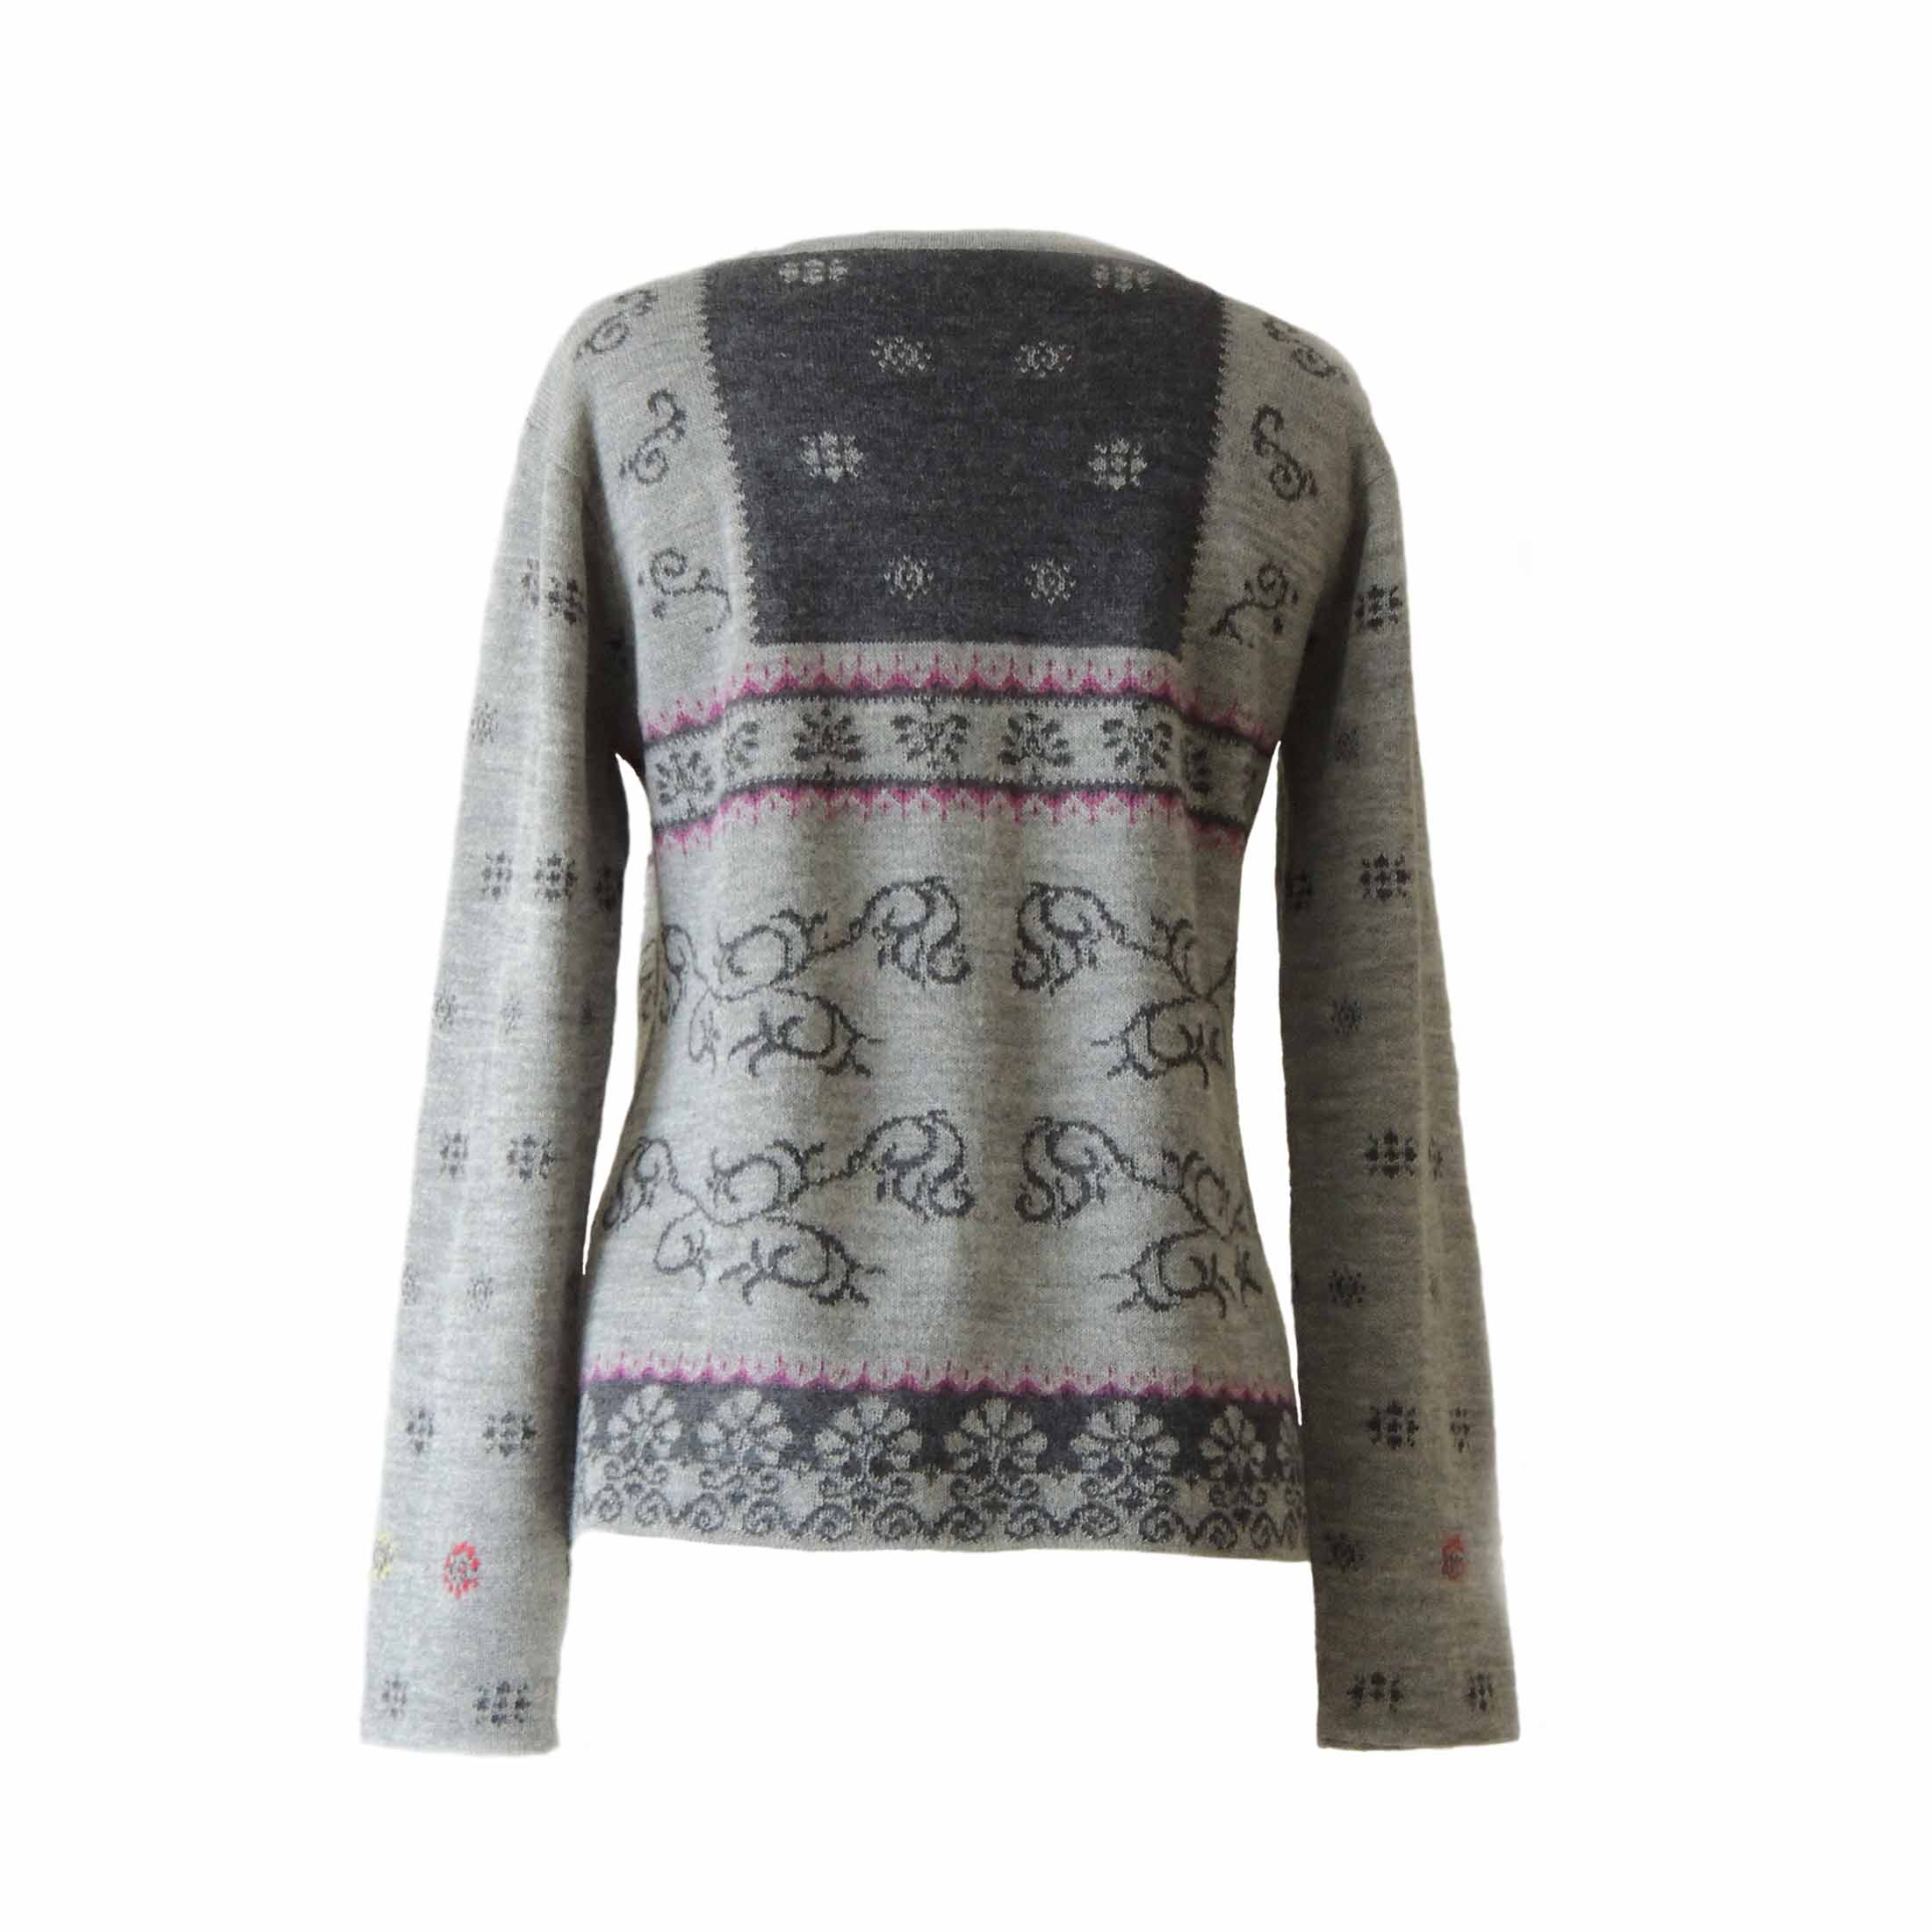 PopsFL knitwear wholesale Women's cardigan jacquard knitted  with hand embroidered details 100% baby alpaca.